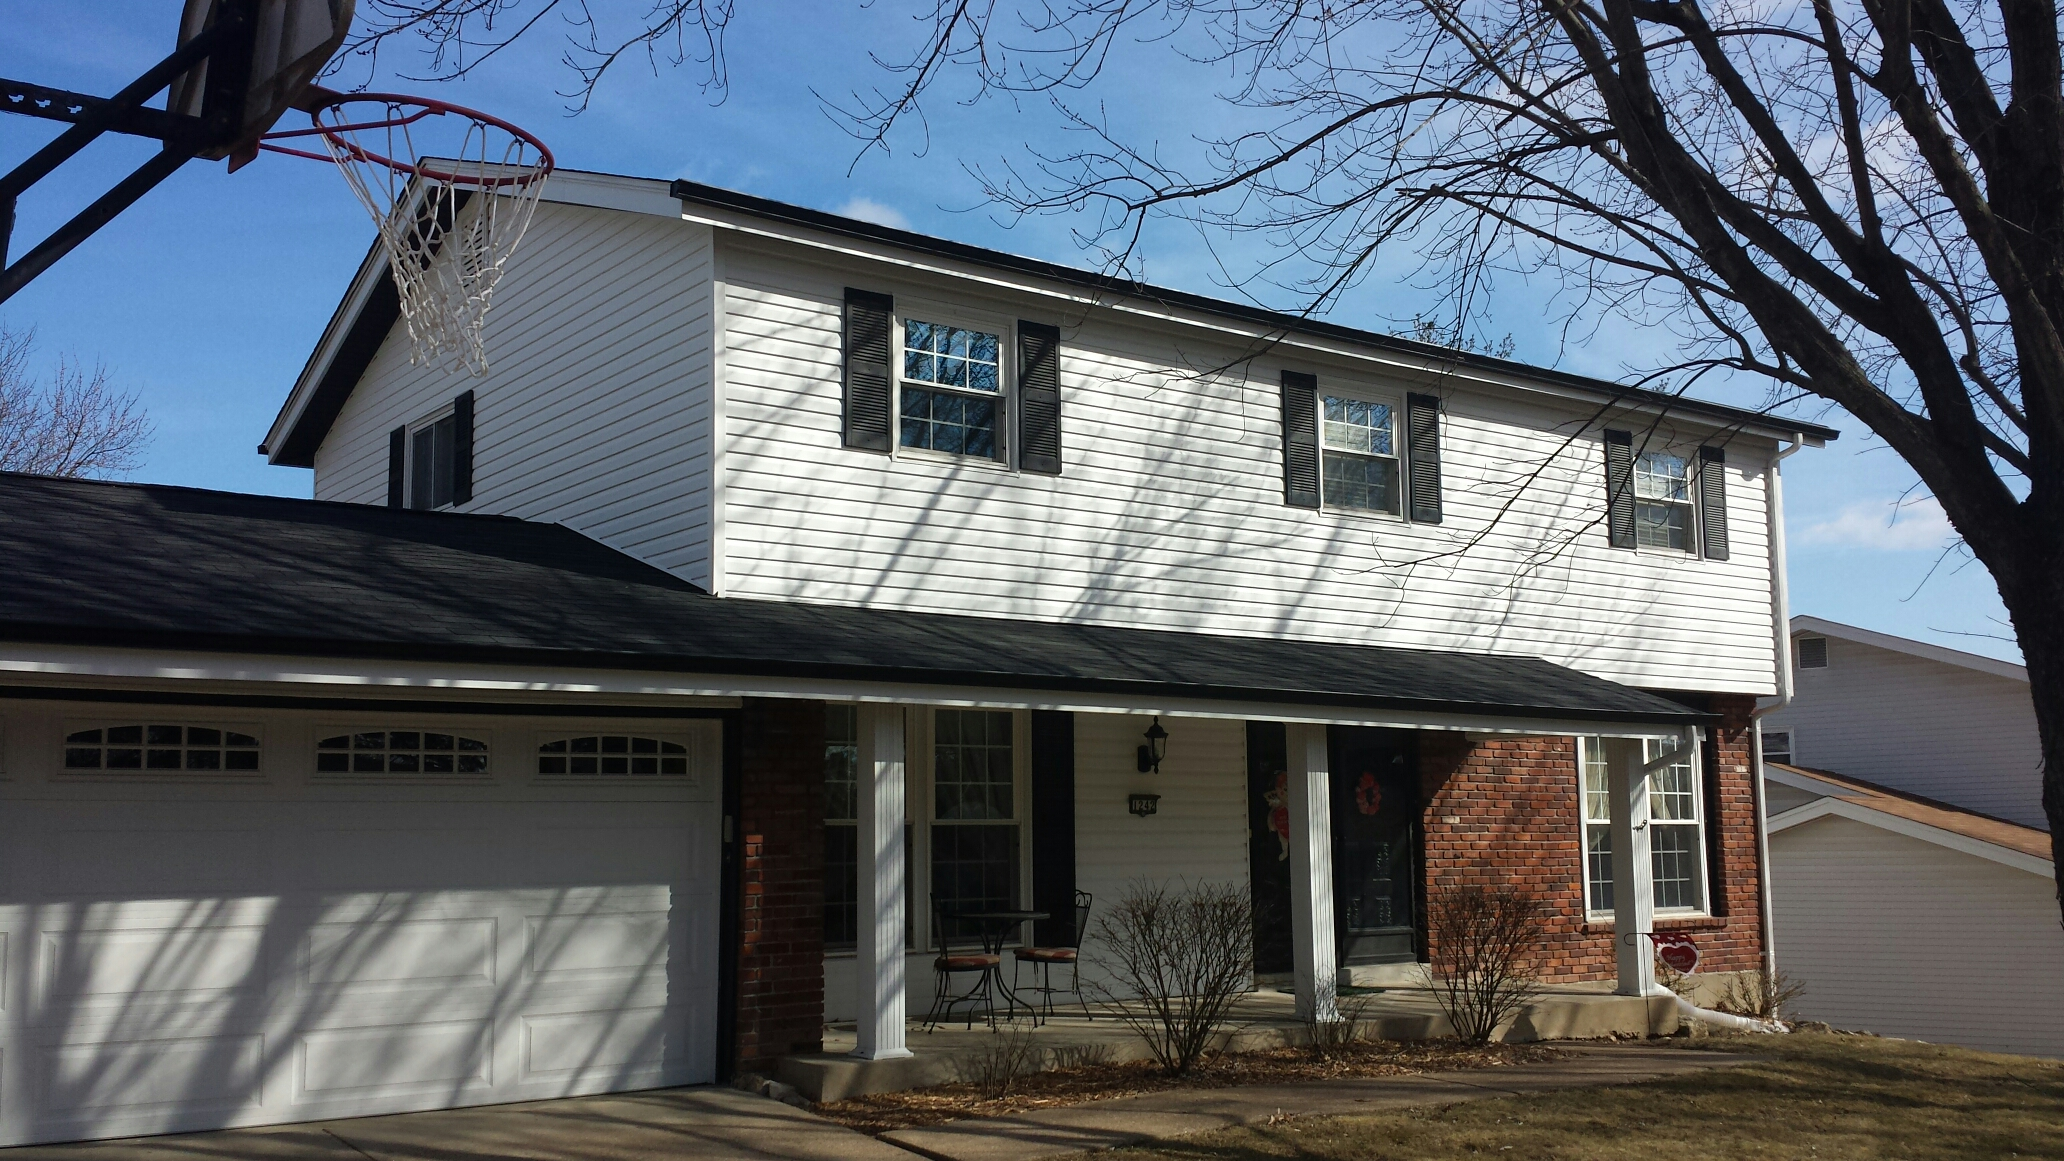 Maryland Heights, MO - Aspen Touch Home vinyl siding job. New insulated vinyl siding looks fantastic on this Chesterfield home.